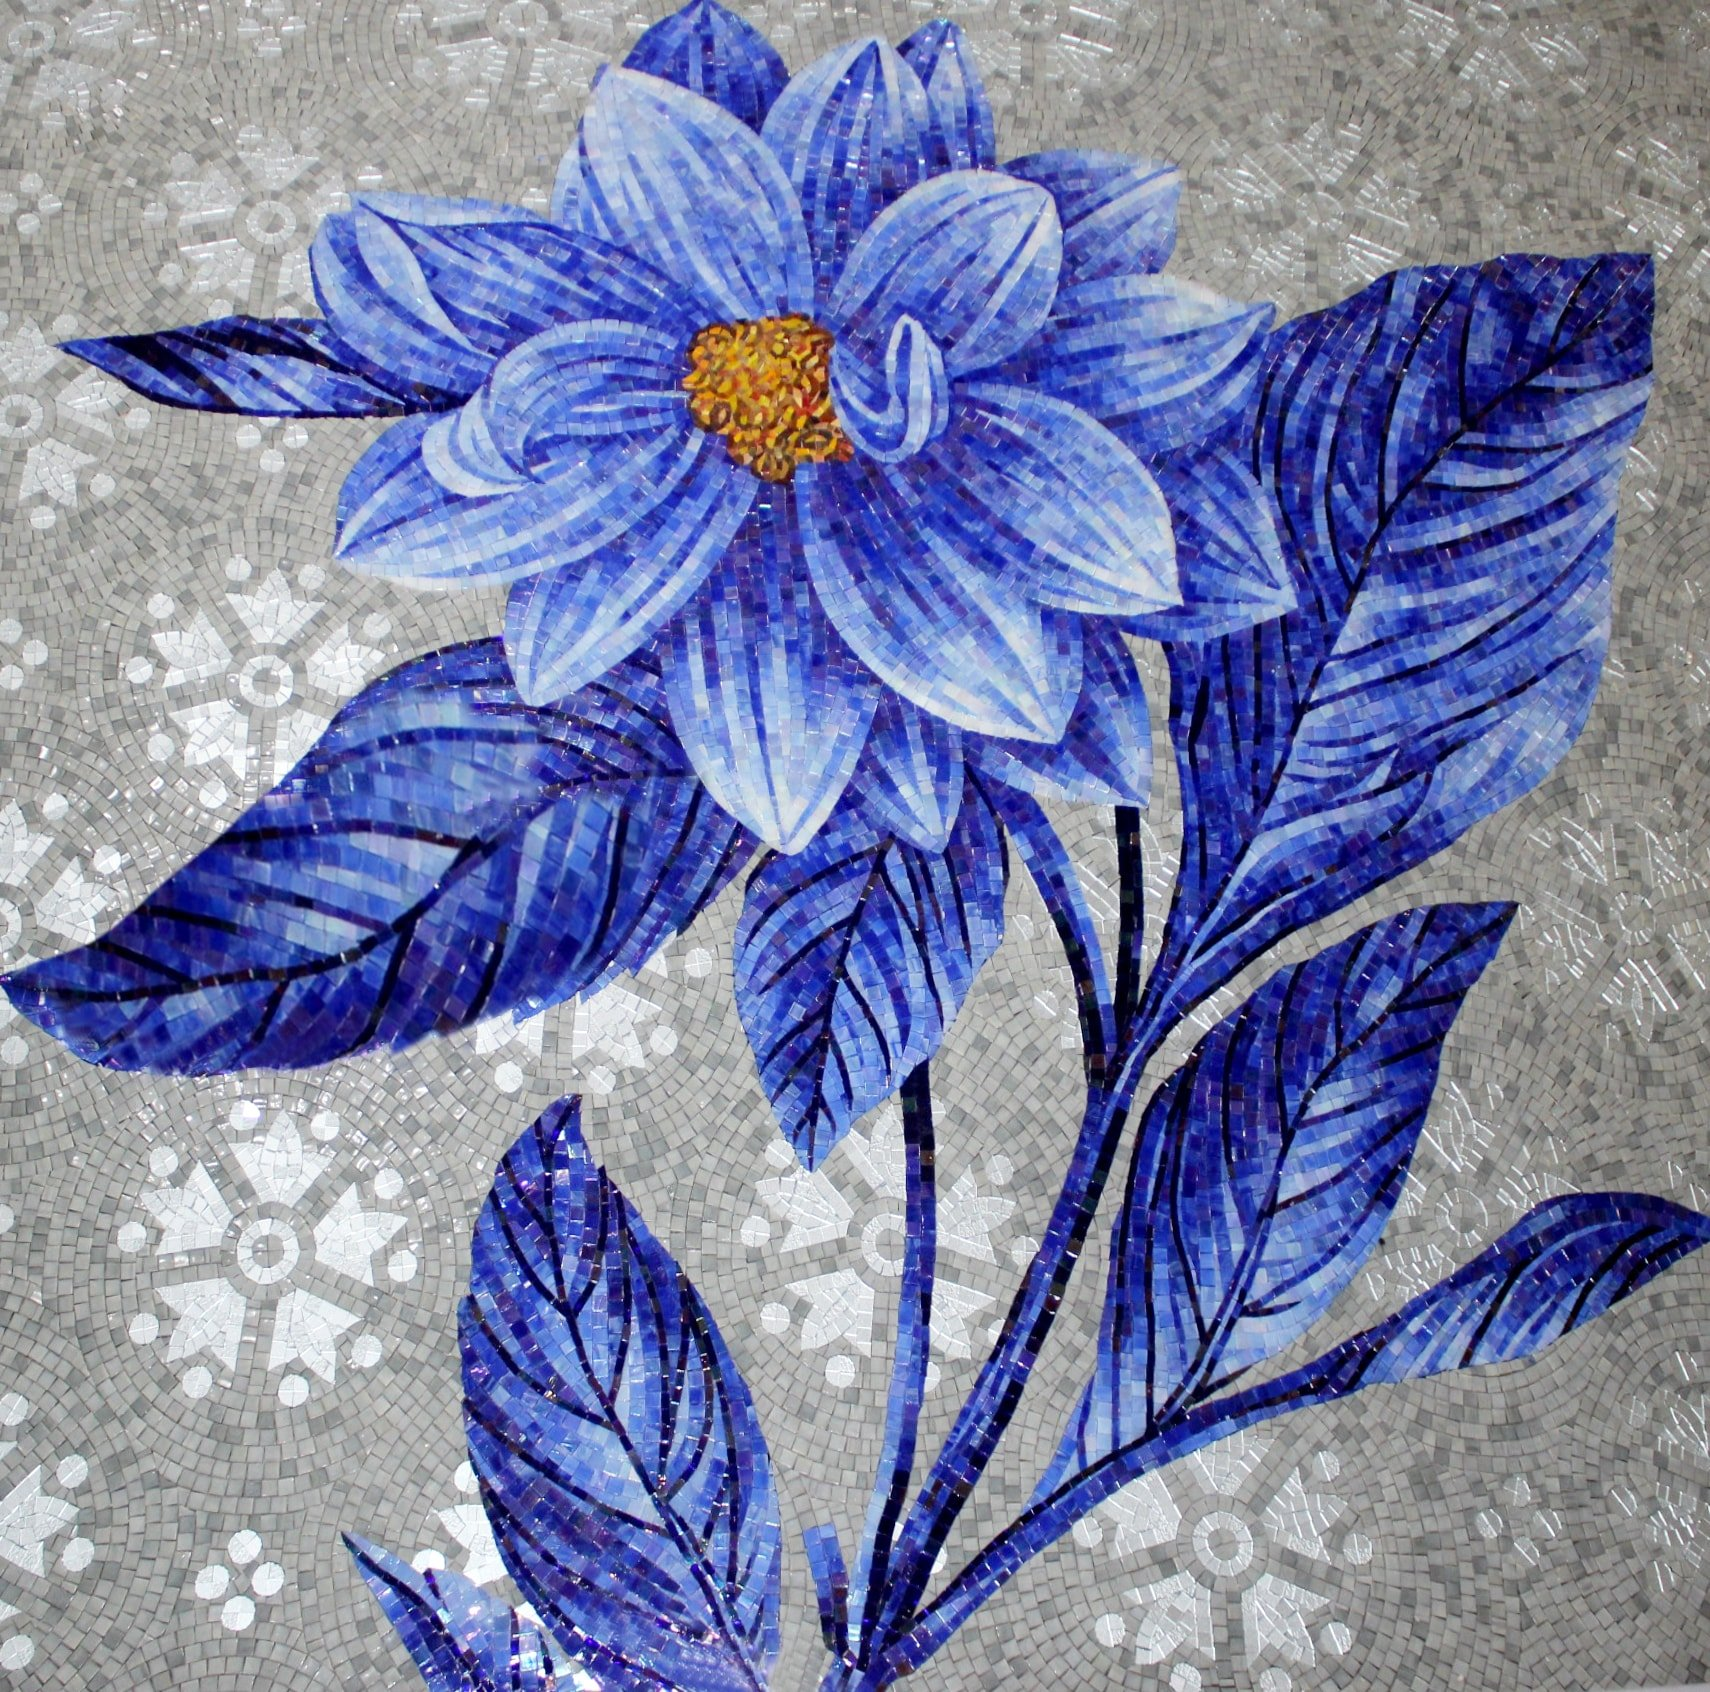 Flower Mosaic Art and Design by Mosaics Lab